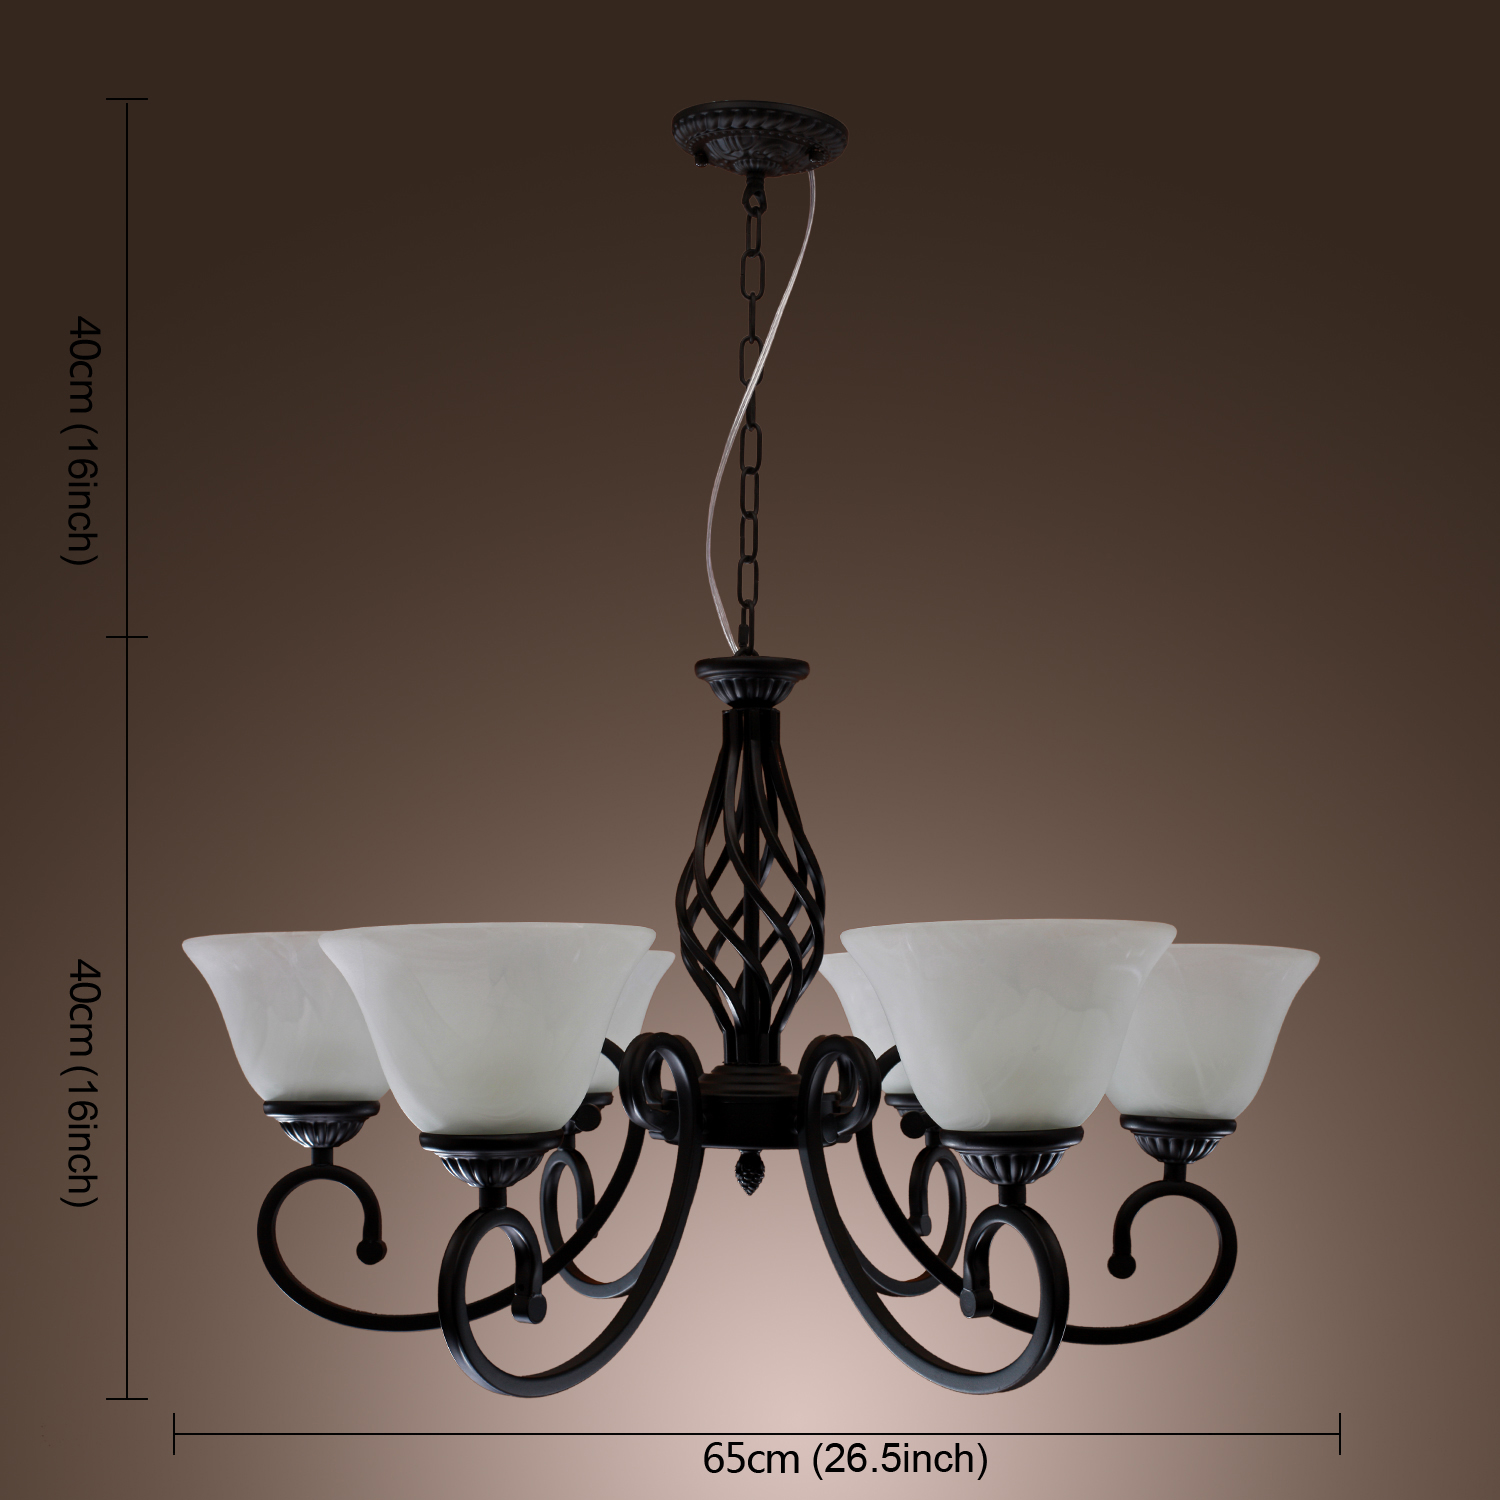 Black Candle Ceiling Lights : Chic metal black candle ceiling light fixture pendant lamp